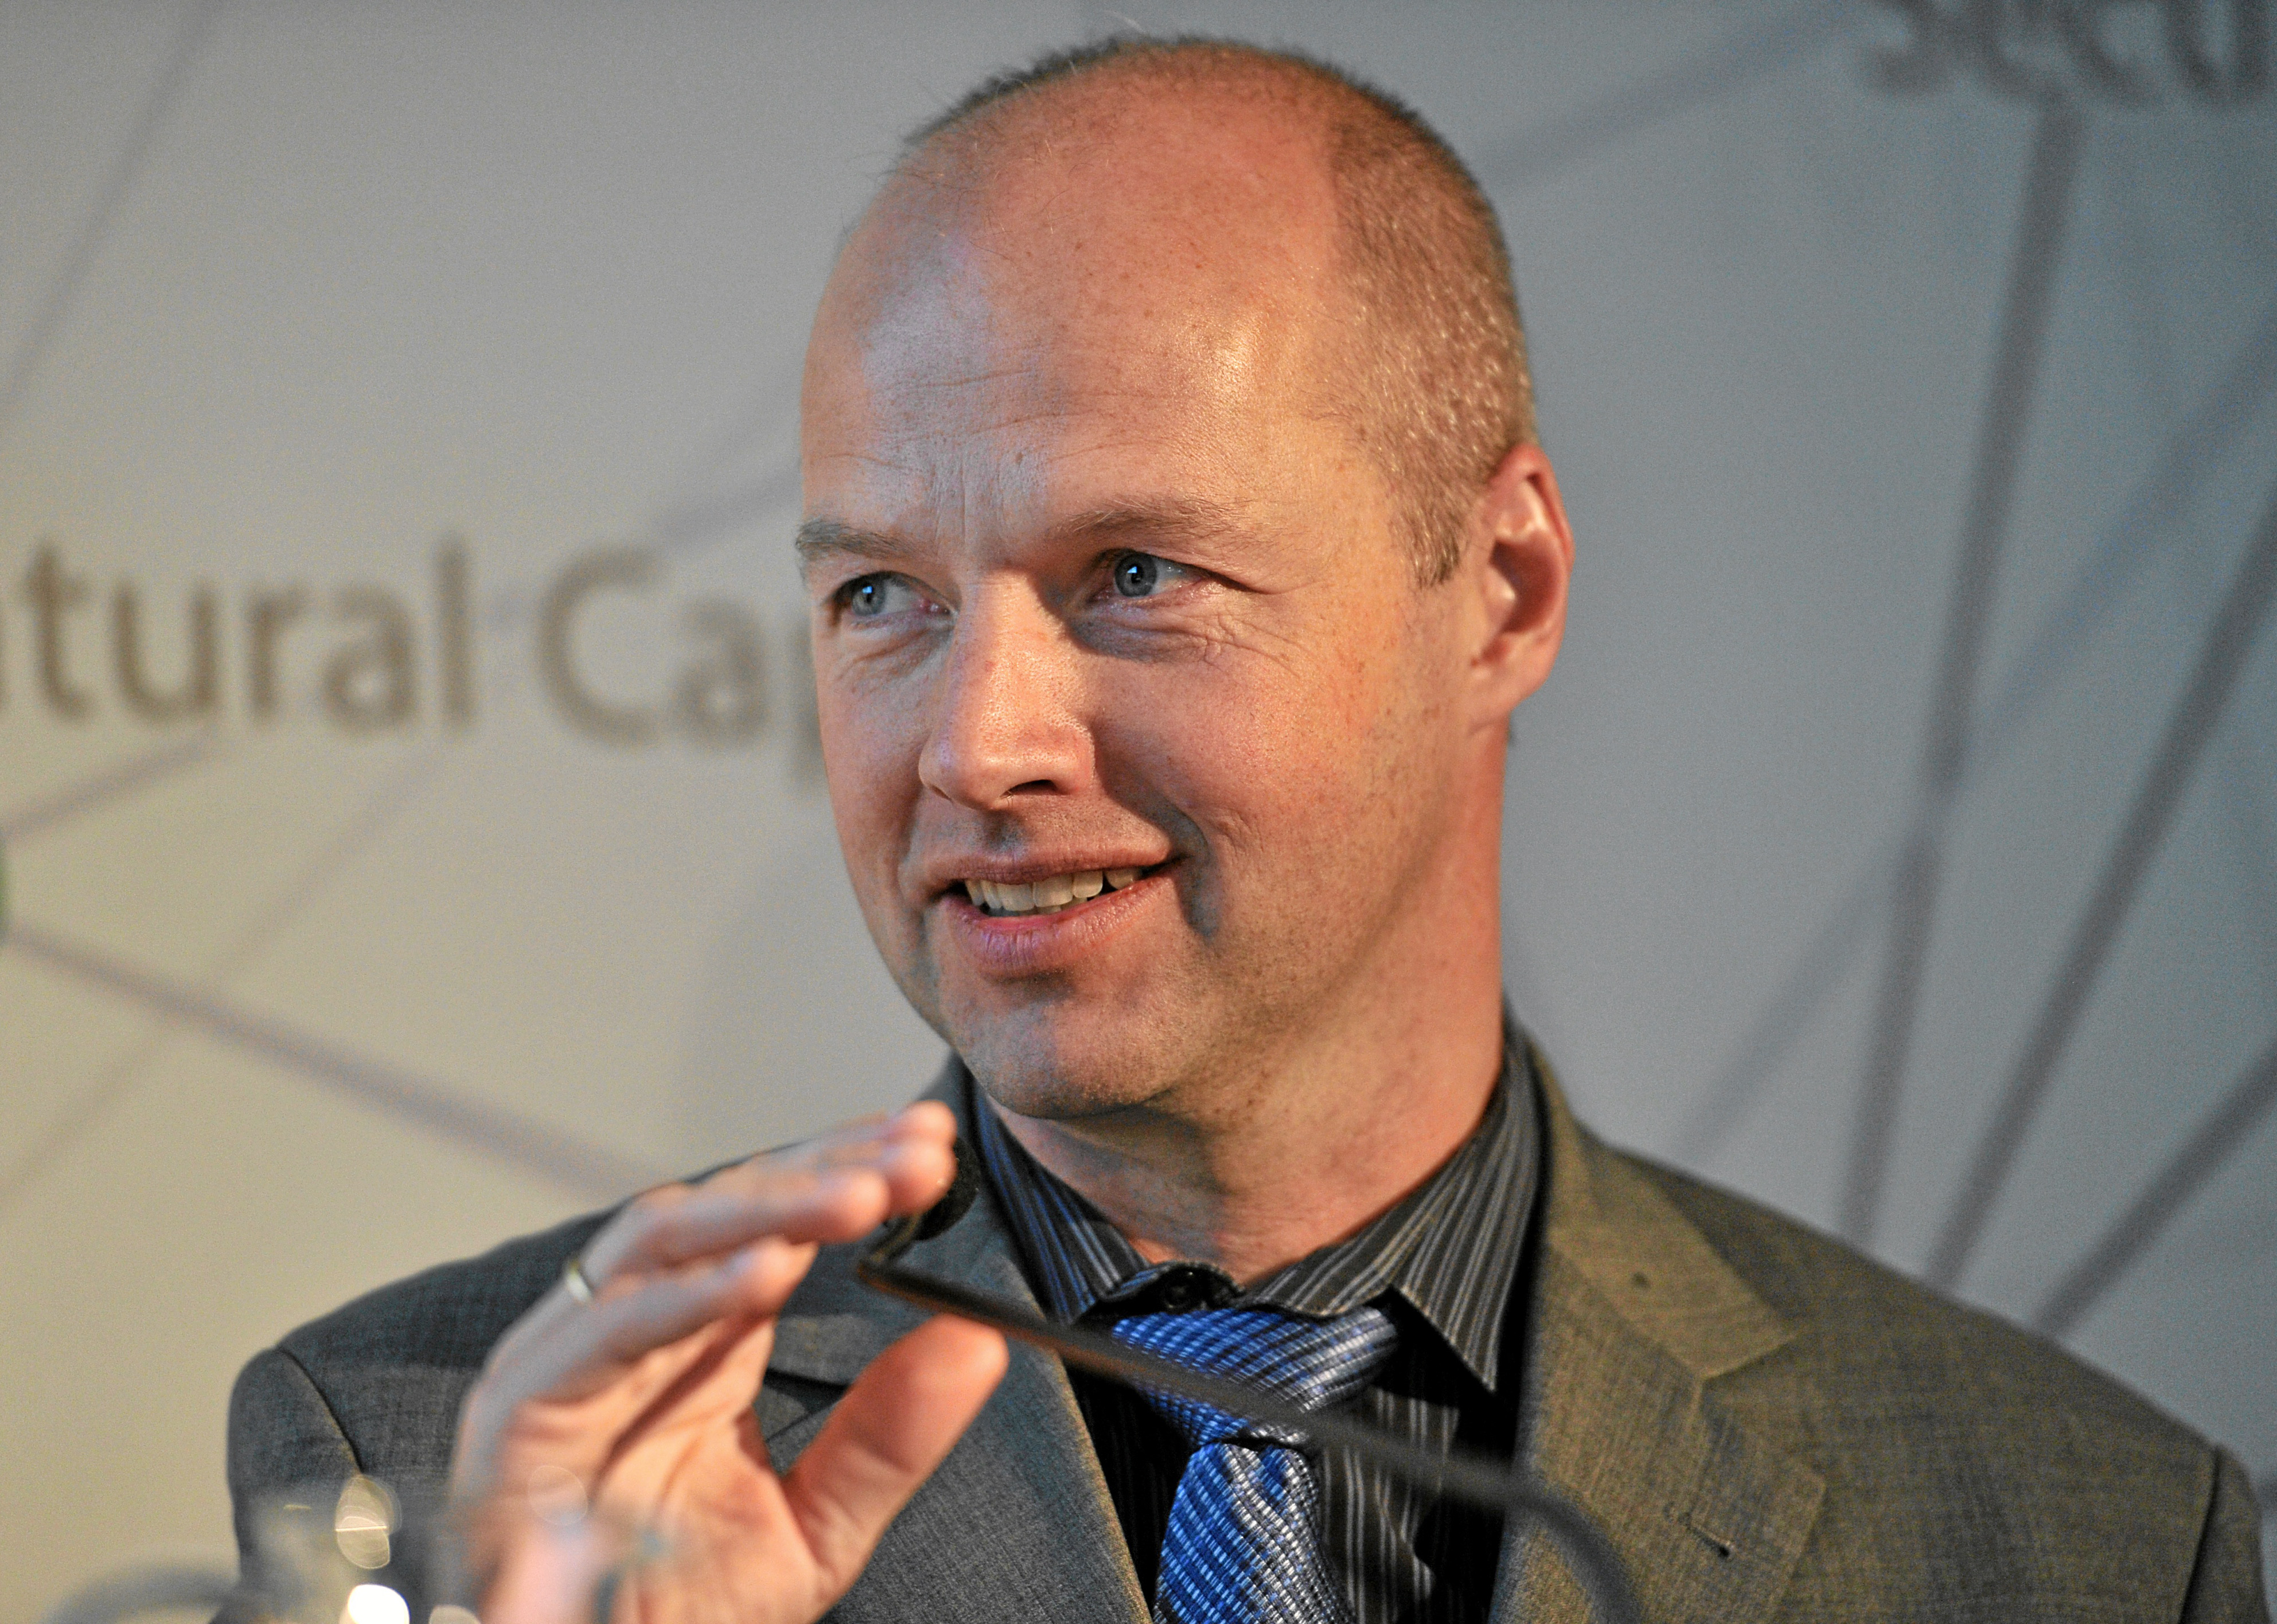 Sebastian Thrun at the [[World Economic Forum]] Annual Meeting in 2013